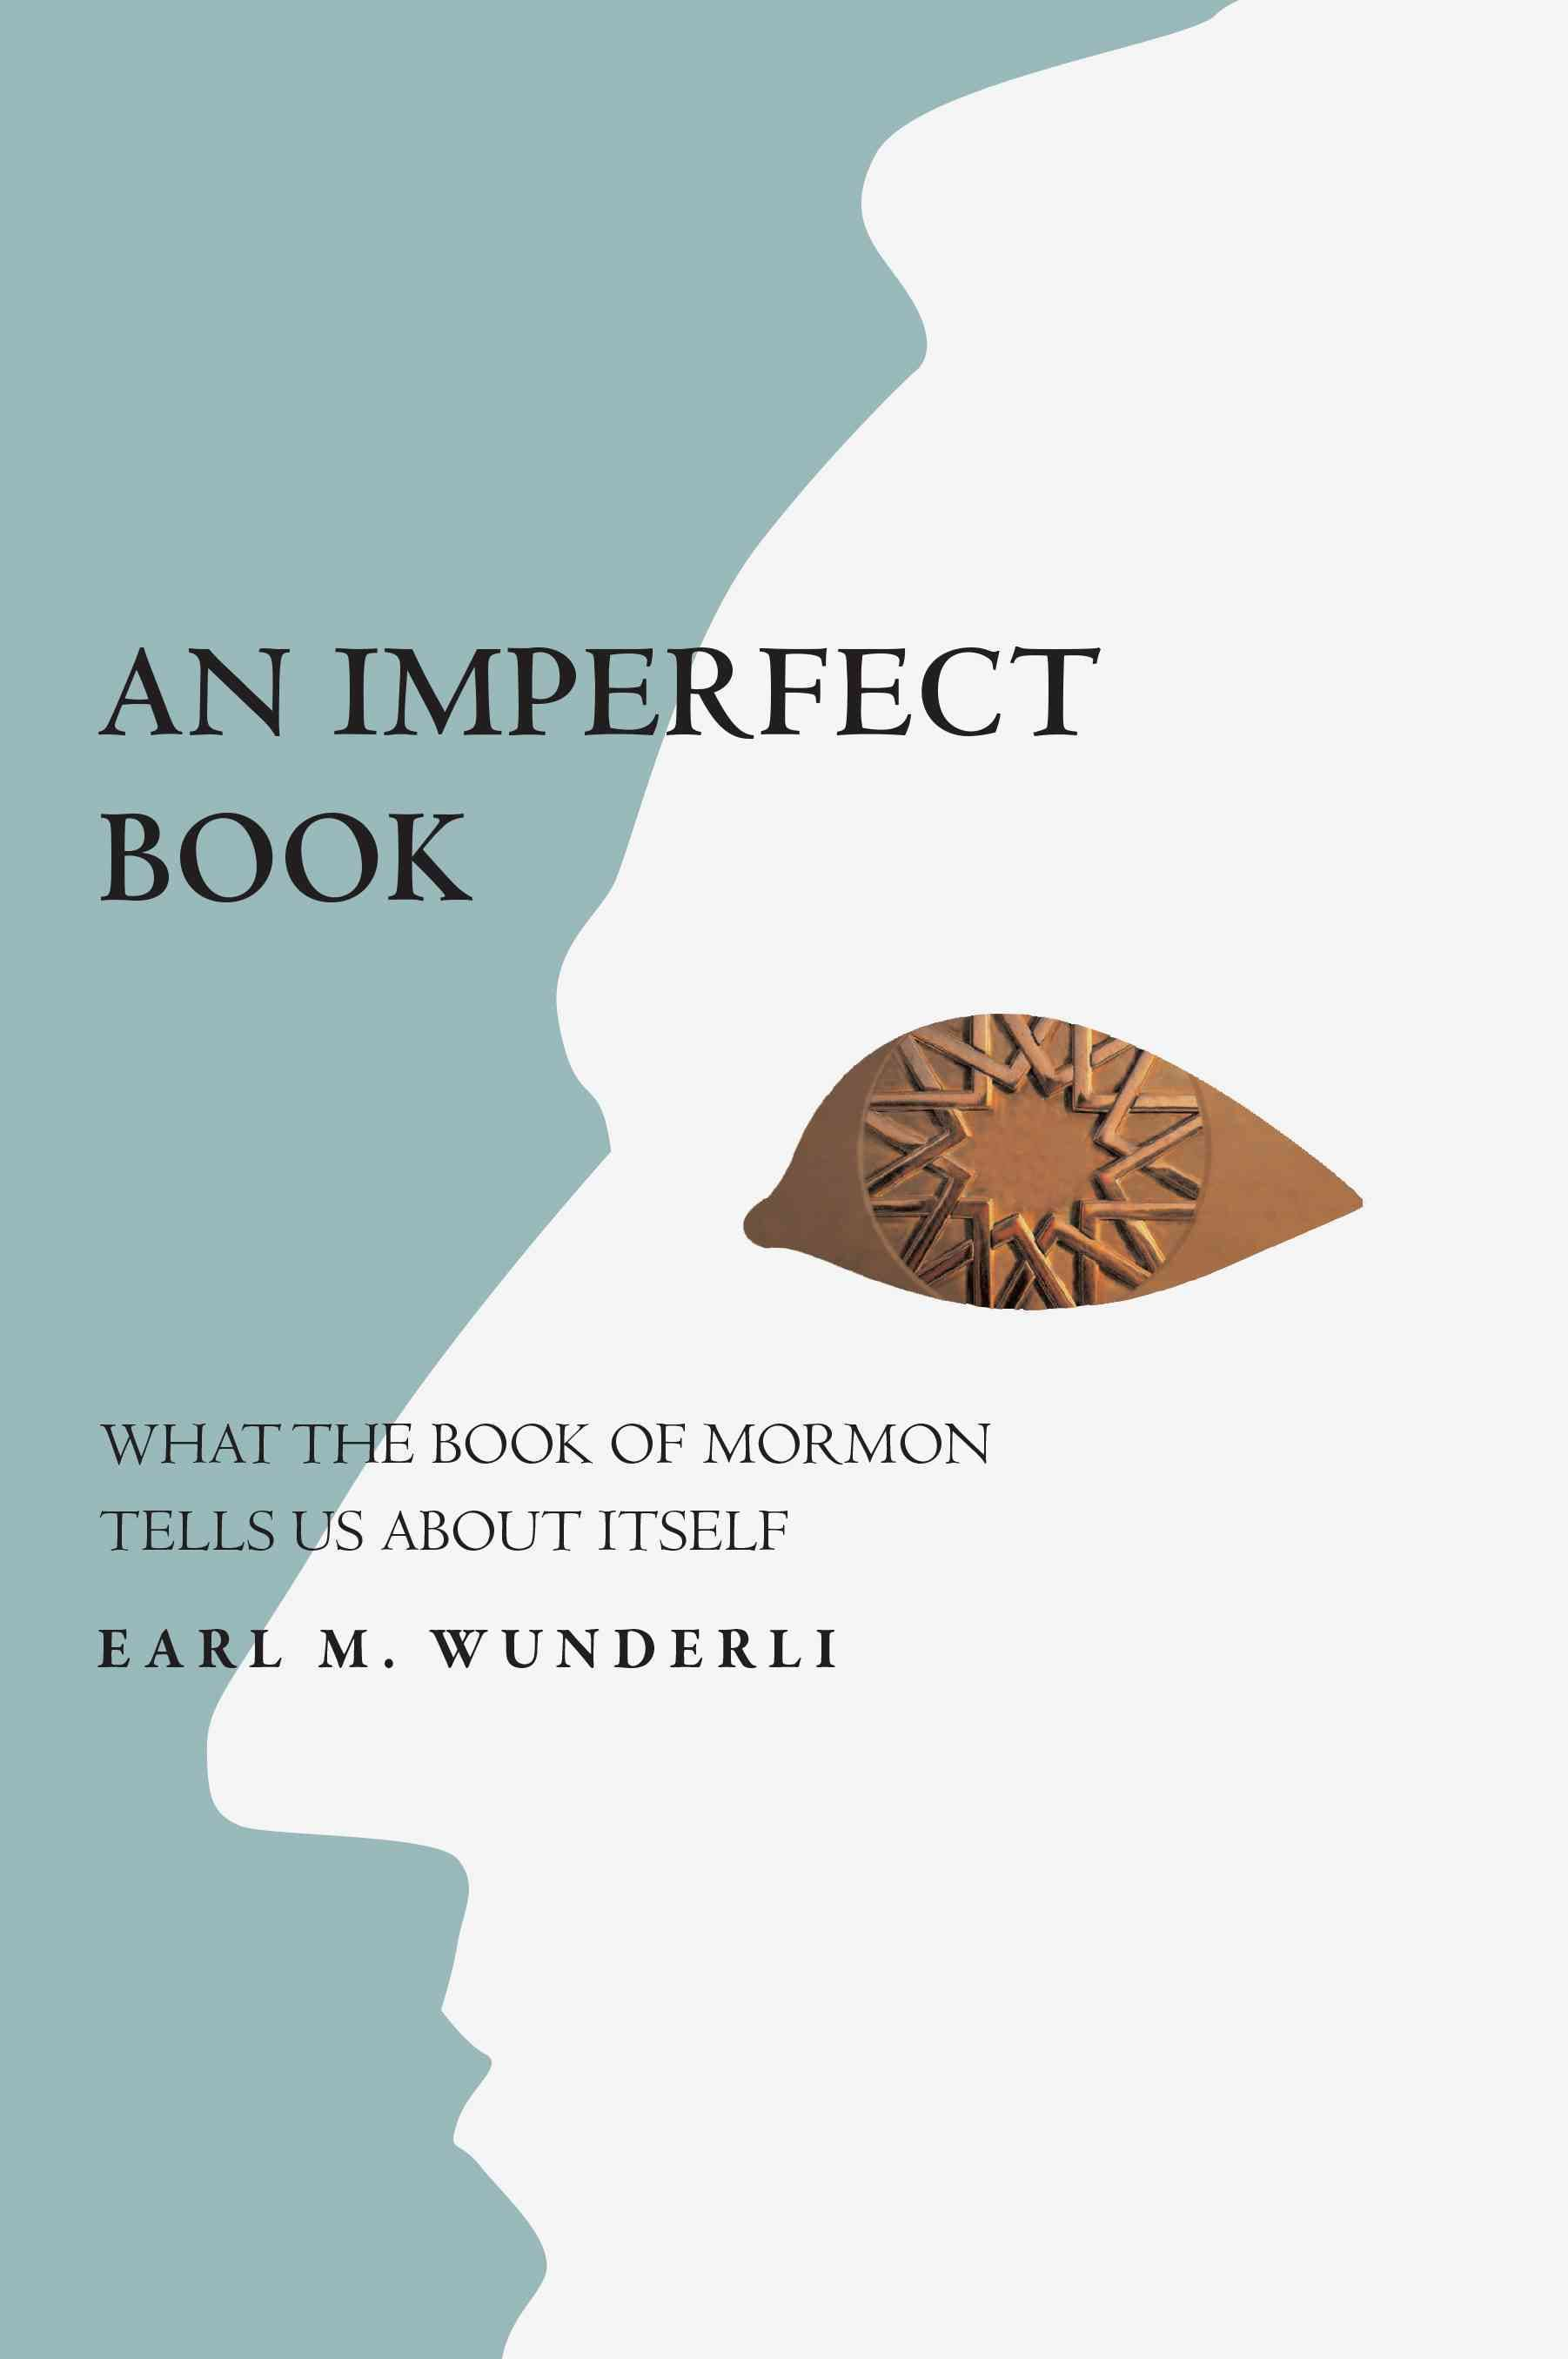 The Imperfect Book: What the Book of Mormon Tells Us About Itself (Paperback)